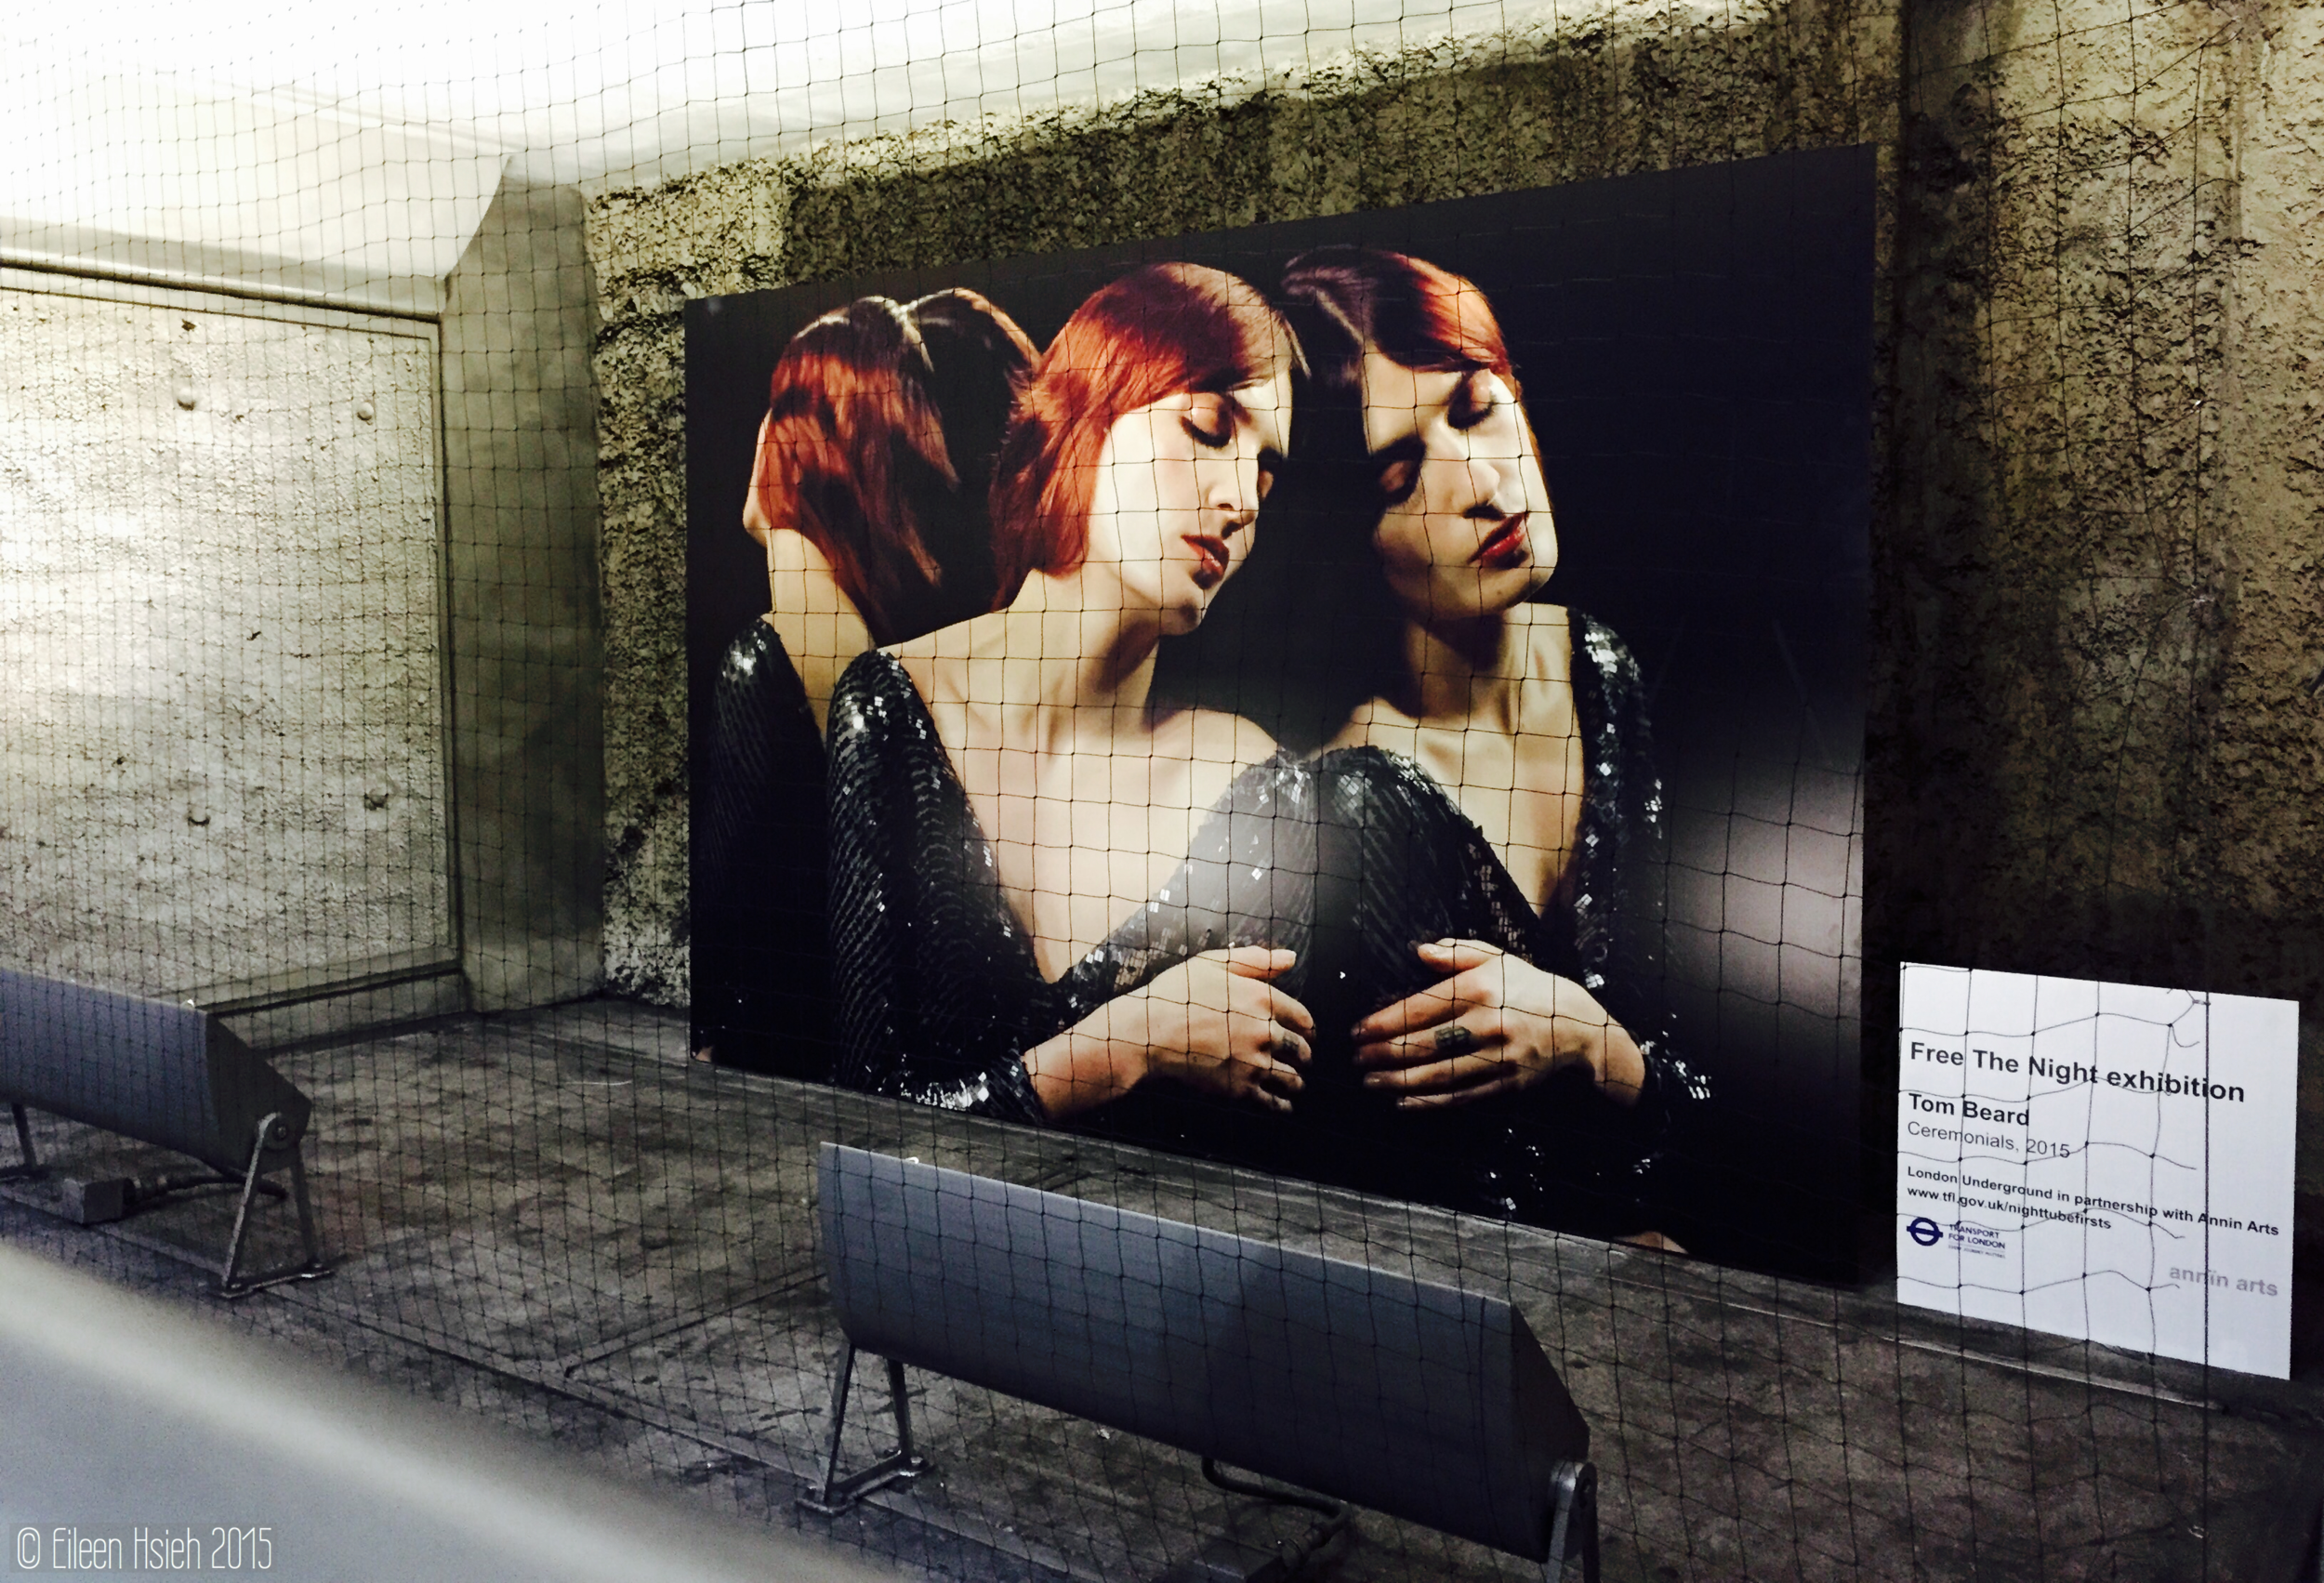 Tom Beard -Ceremonials (2011), one of the 24 large-scale photographic works on displayed at Westminster Underground Station. © Eileen Hsieh